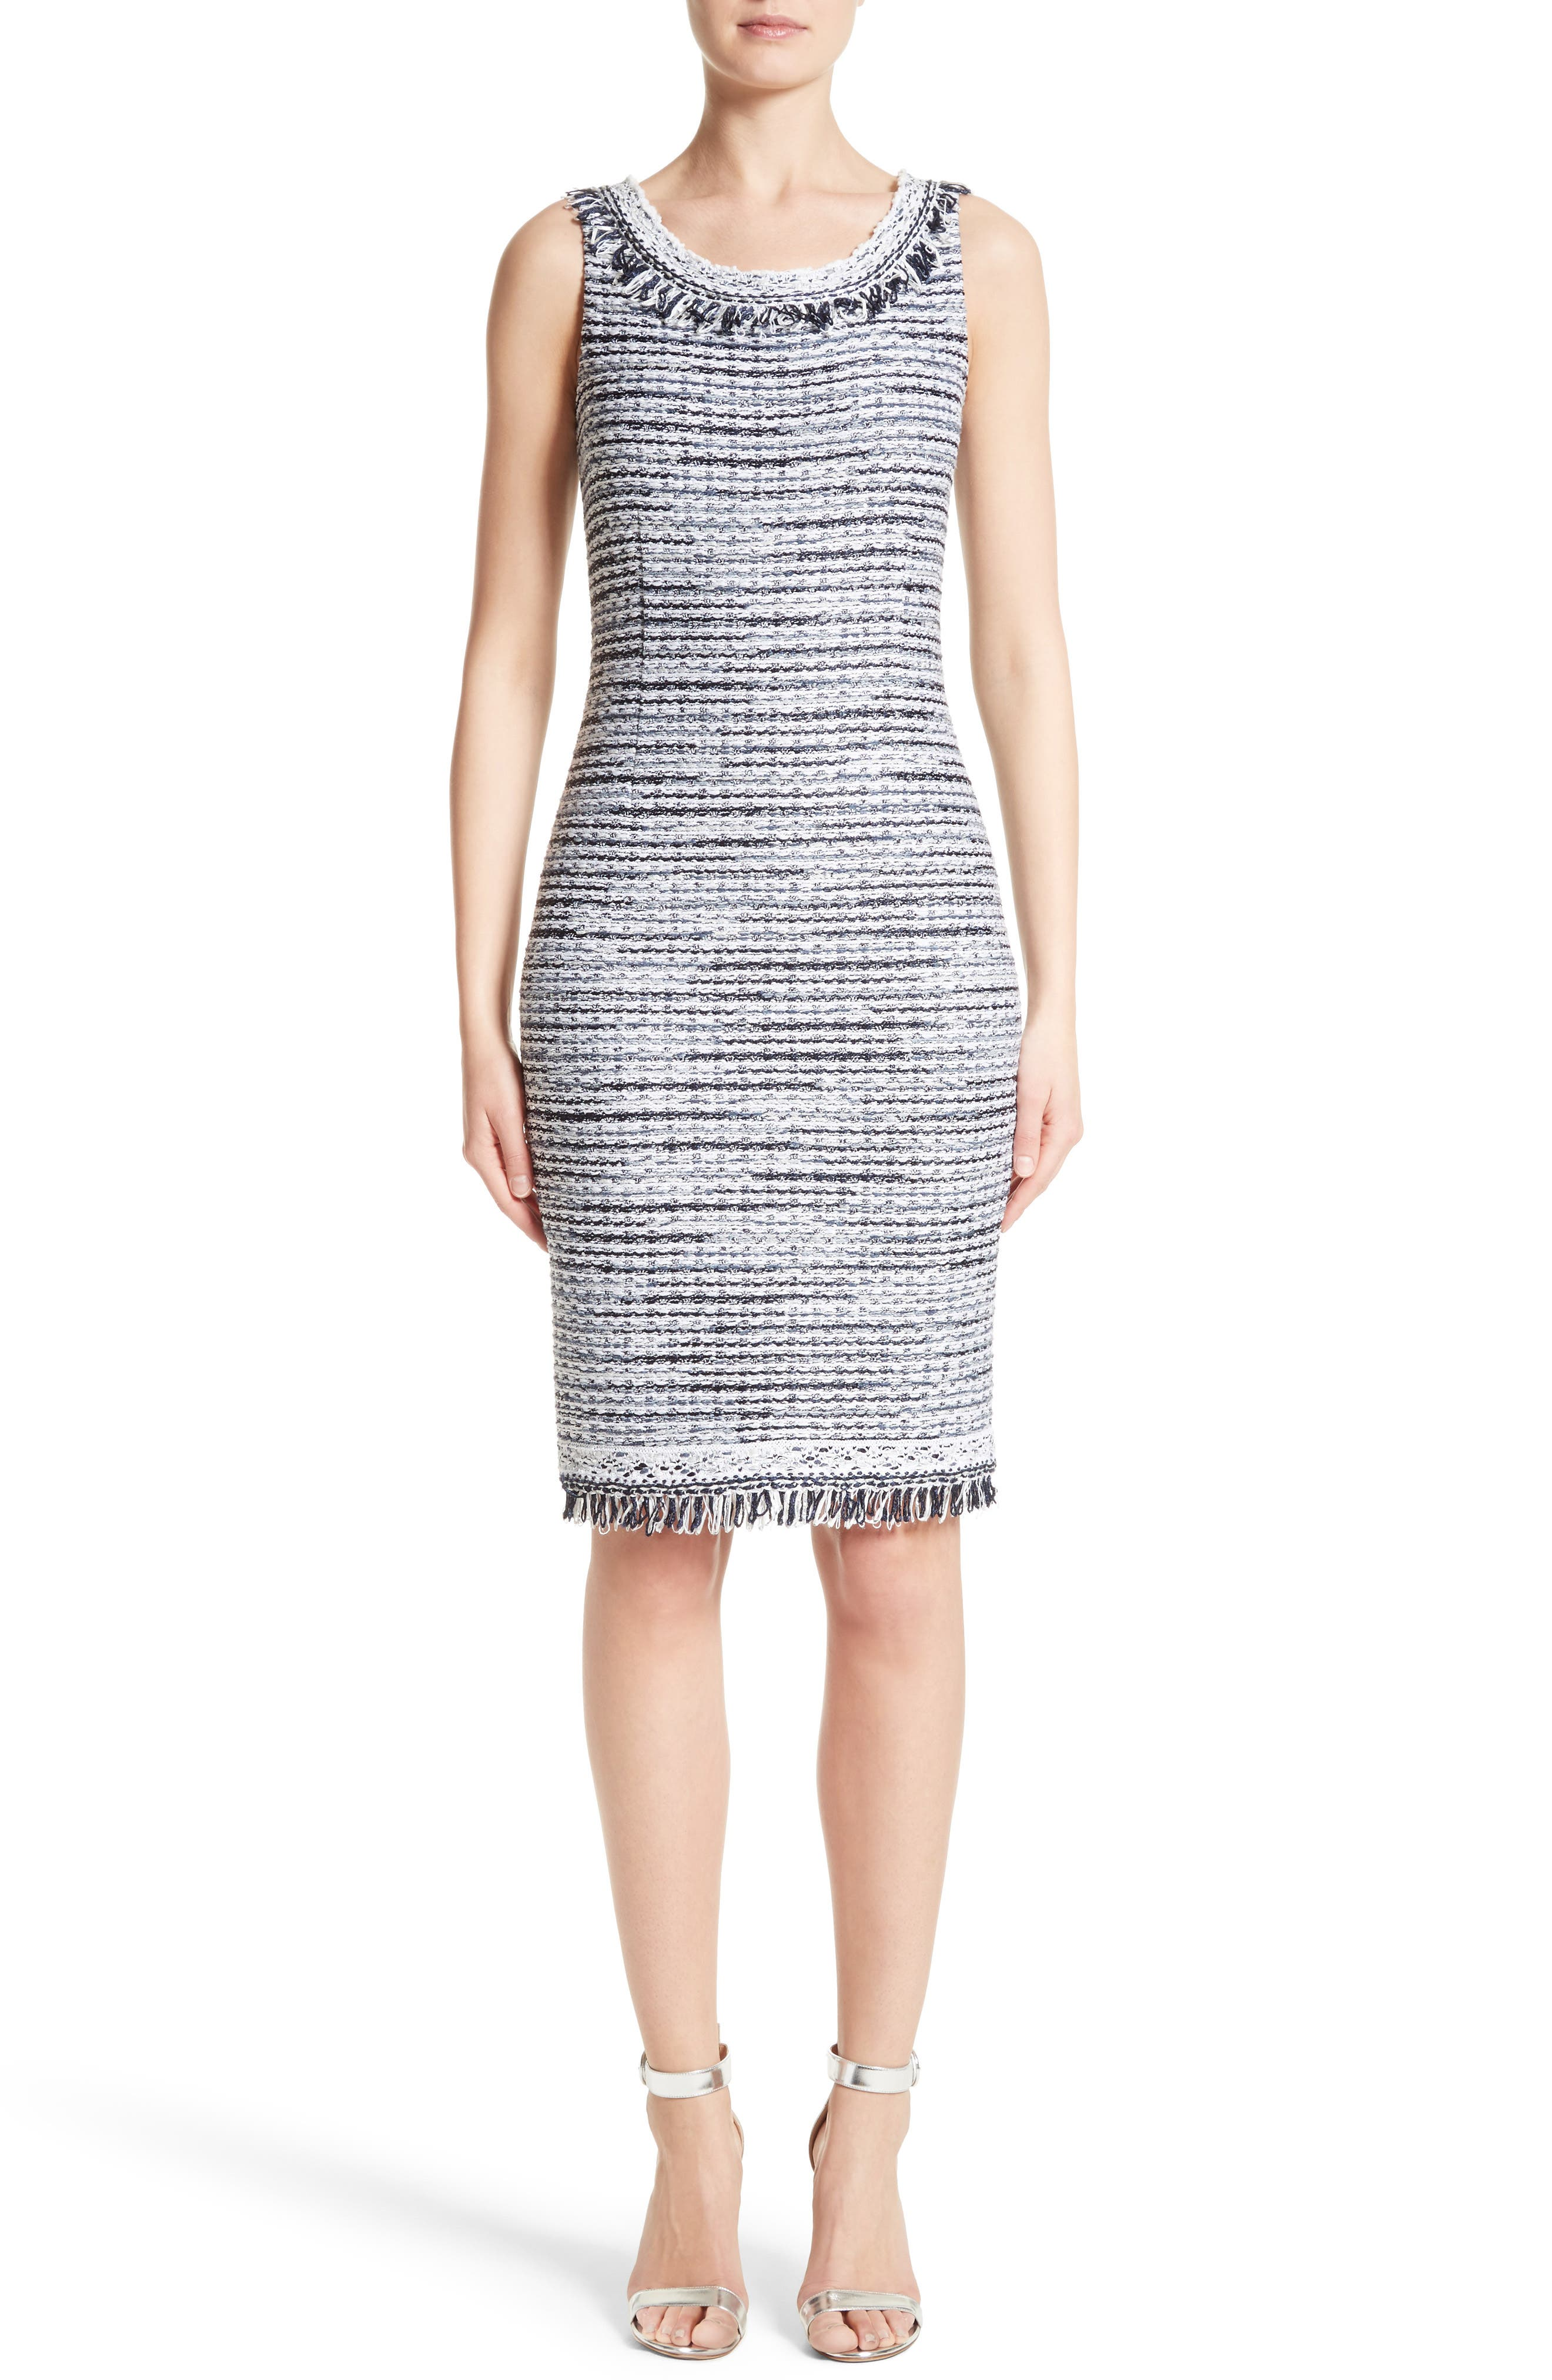 ST. JOHN COLLECTION S. John Collection Tanya Knit Pencil Dress